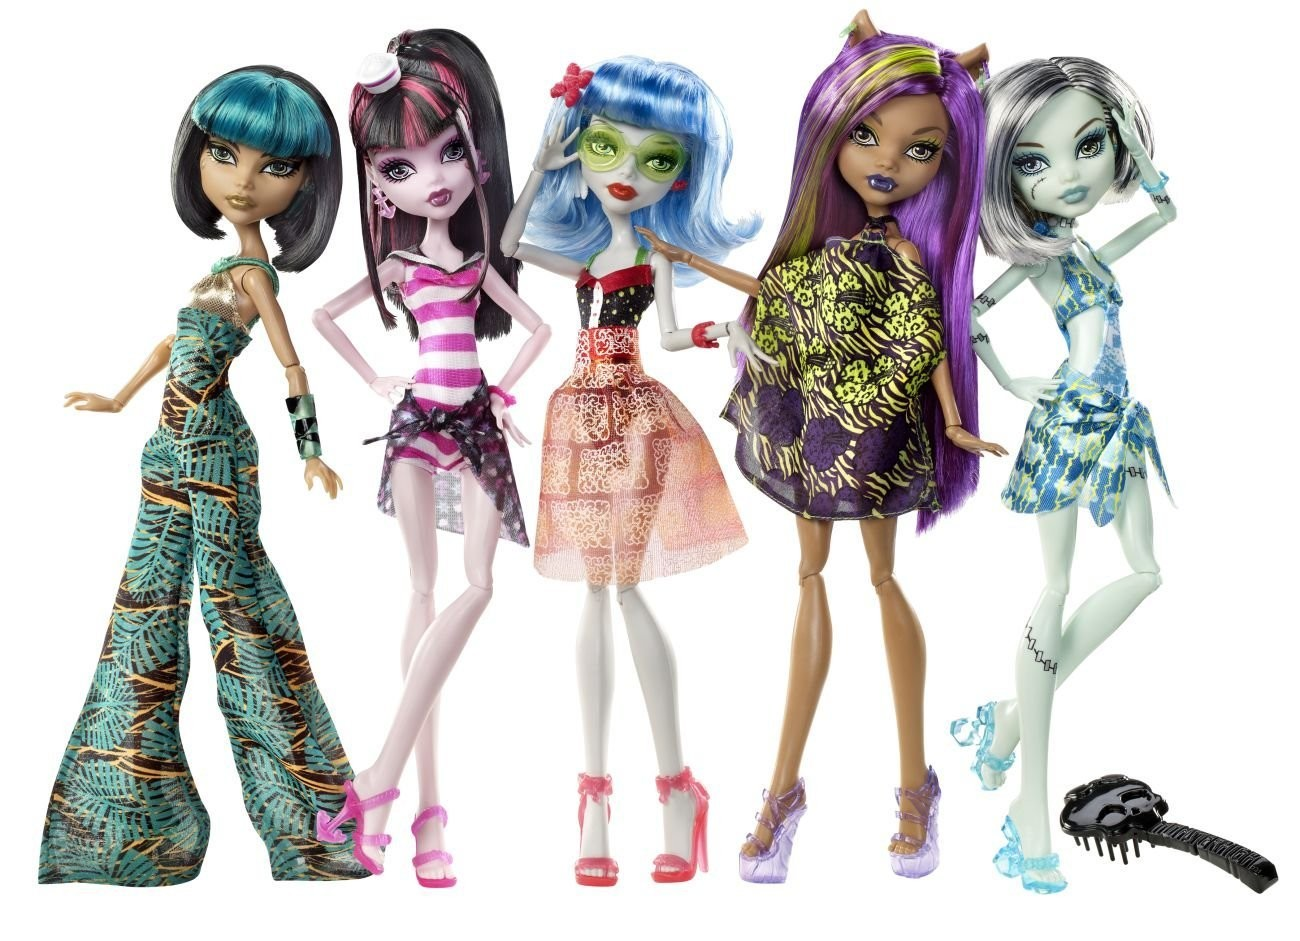 Cleo Draculaura Ghoulia Clawdeen Frankie 5 Pack Skull Shores Monster High Dolls